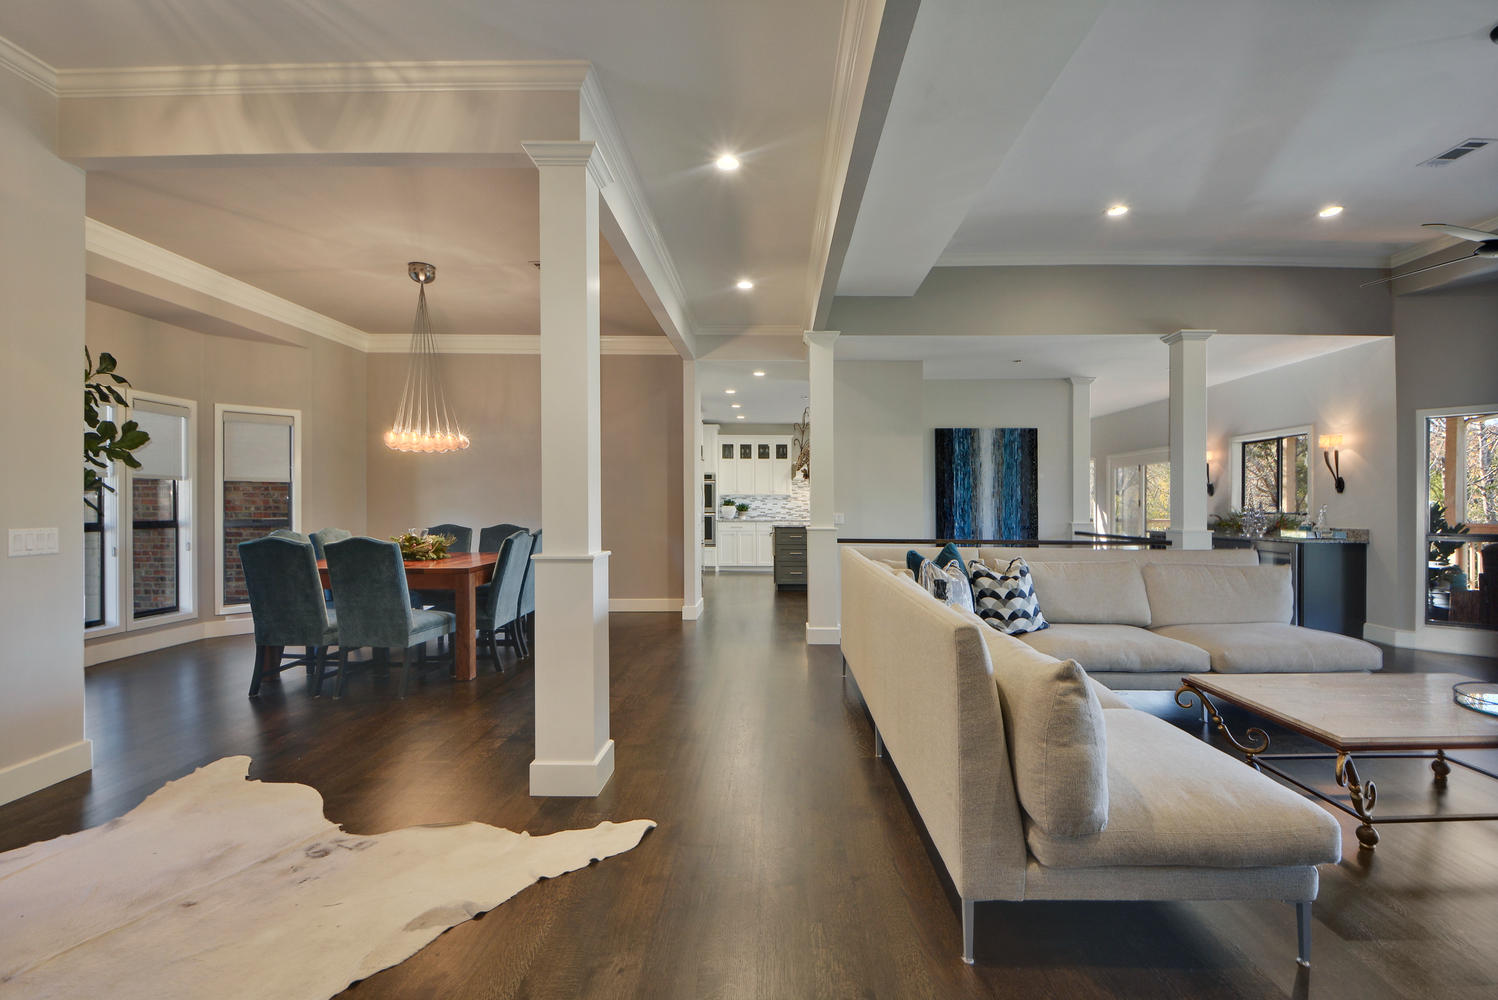 Transitional style living and dining rooms